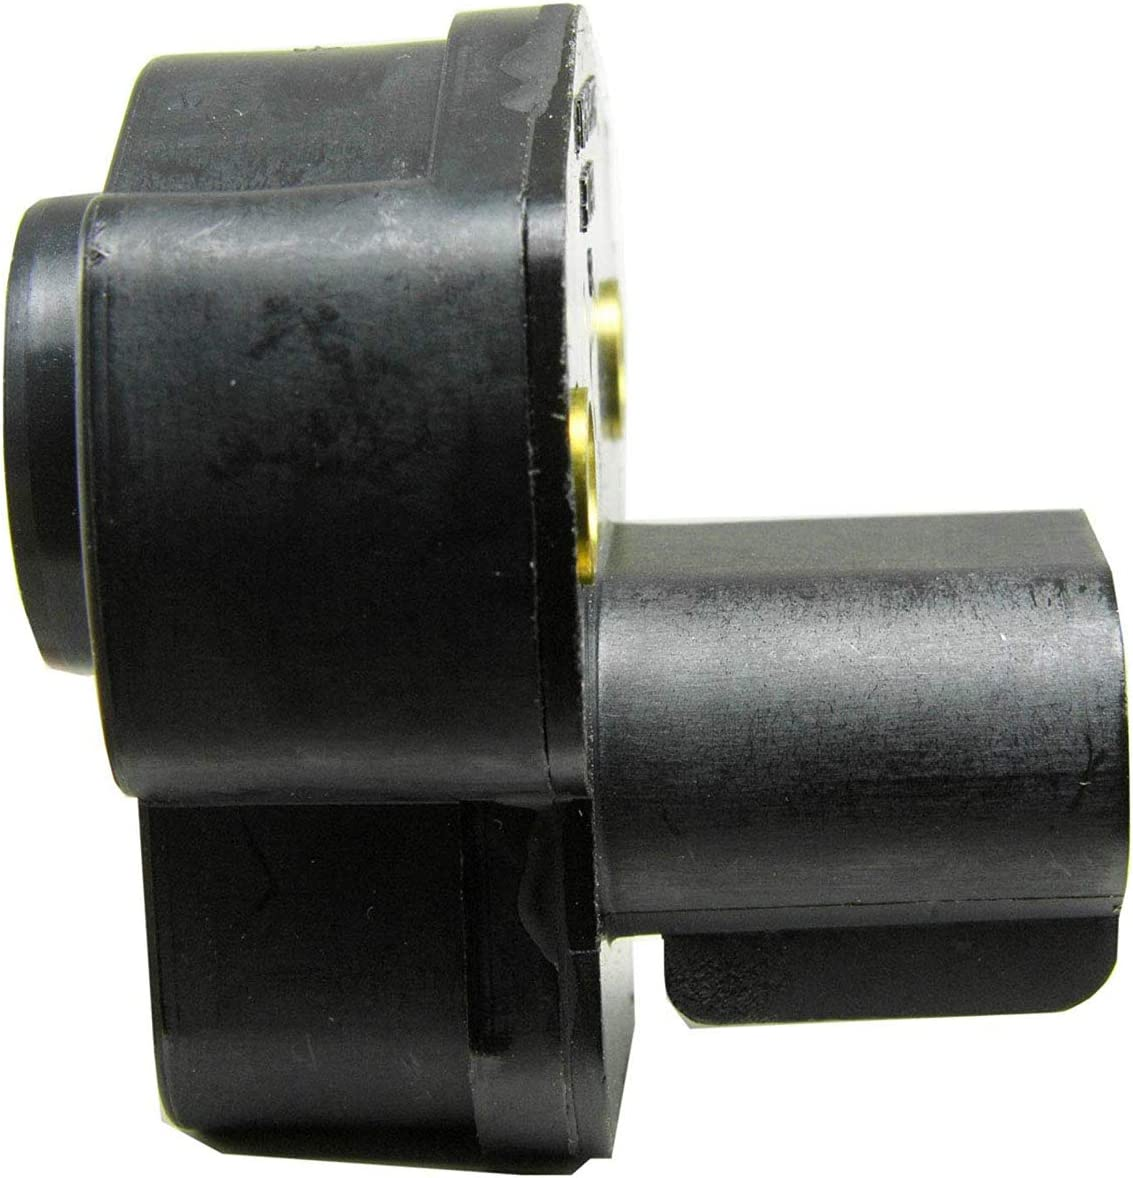 Throttle Position Sensor Ramco Automotive RA-TPS1026 Compatible with Wells TPS343 Standard Motor Products TH266 TH415